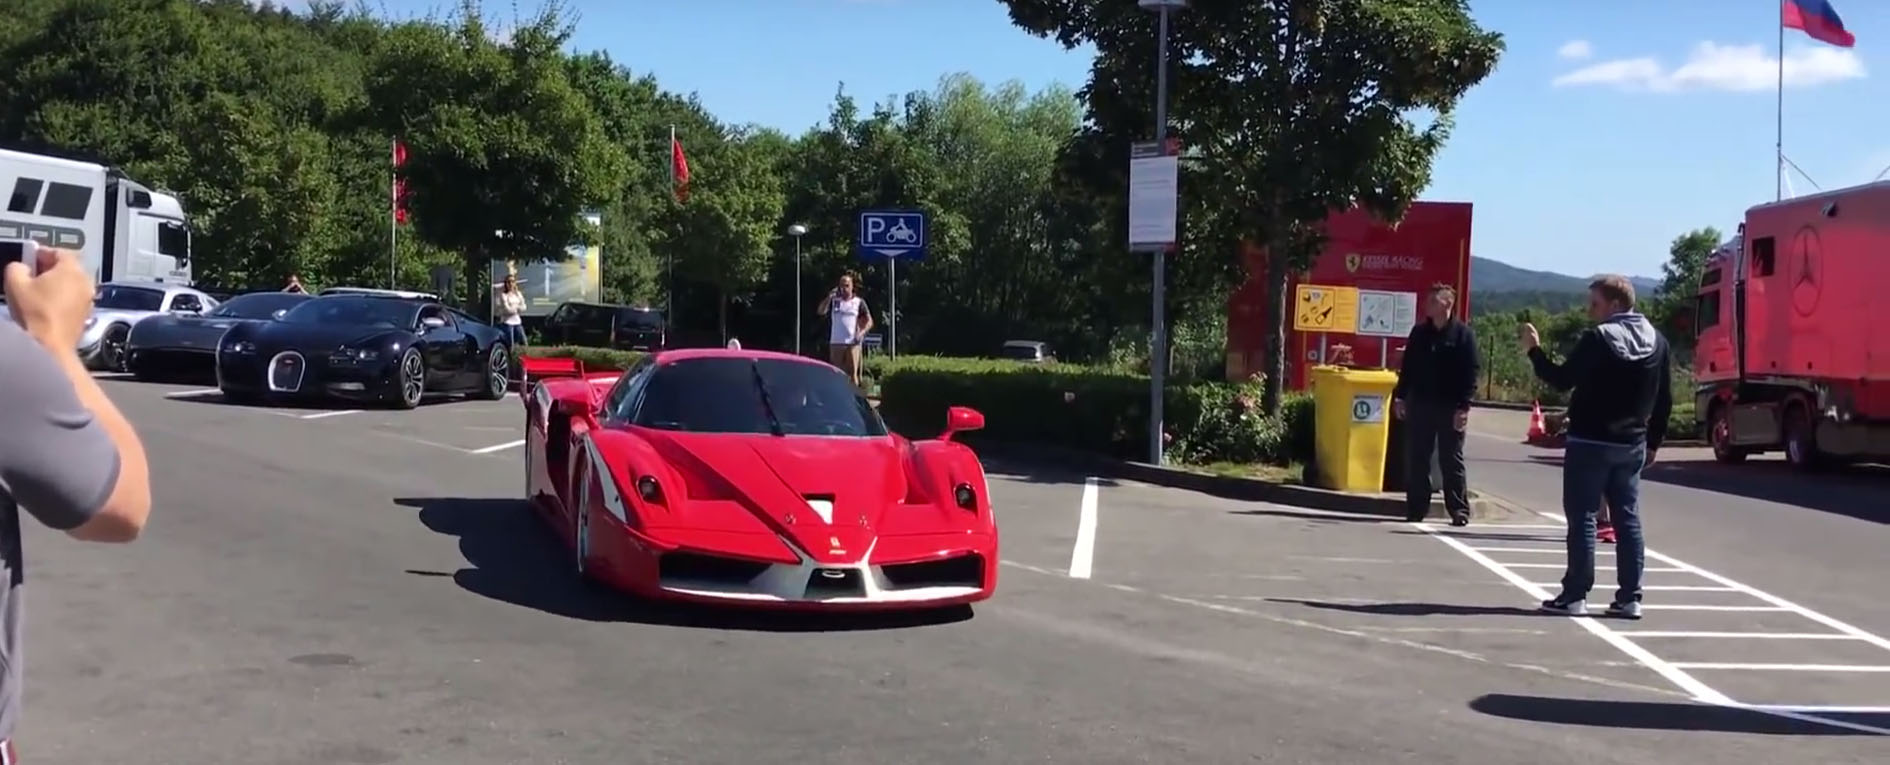 russian-billionaire-roman-abramovich-parades-his-supercars-on-the-nurburgring_2